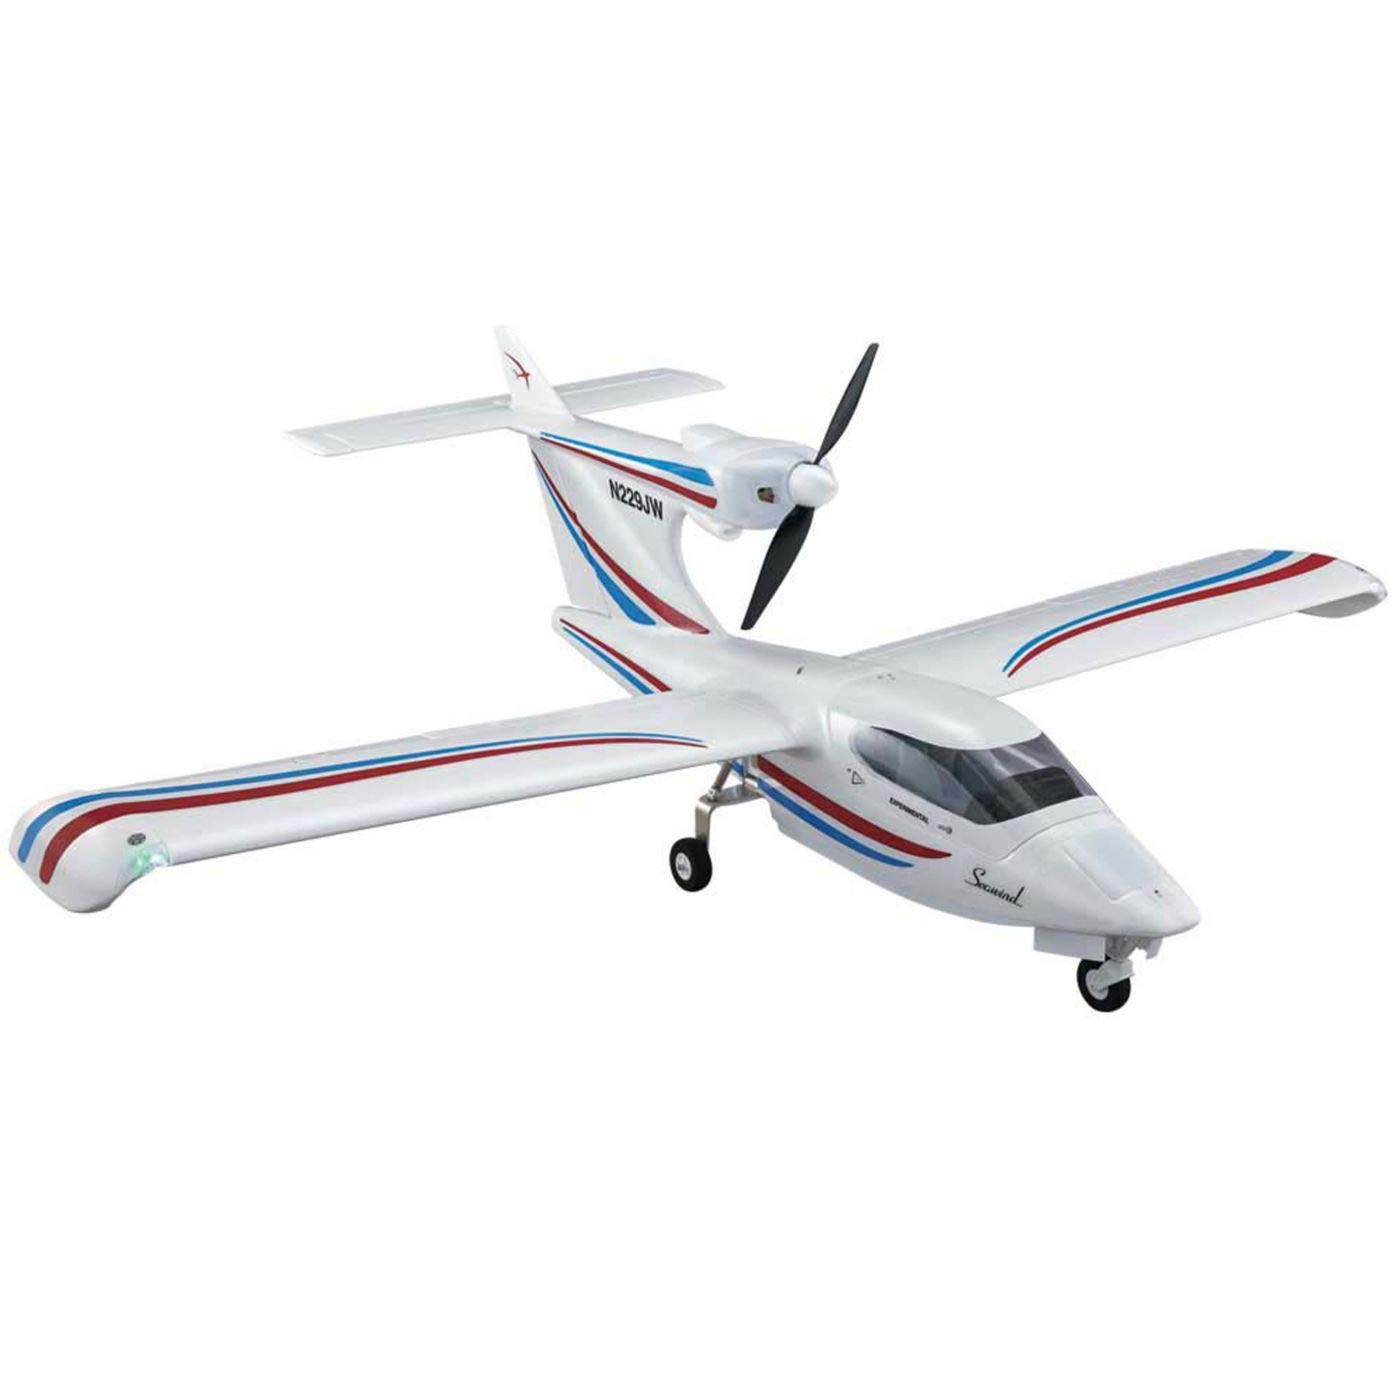 Flyzone Seawind Brushless Electric Powered Receiver Ready 56.5 Inches Wingspan Amphibious Model Seaplane by Flyzone